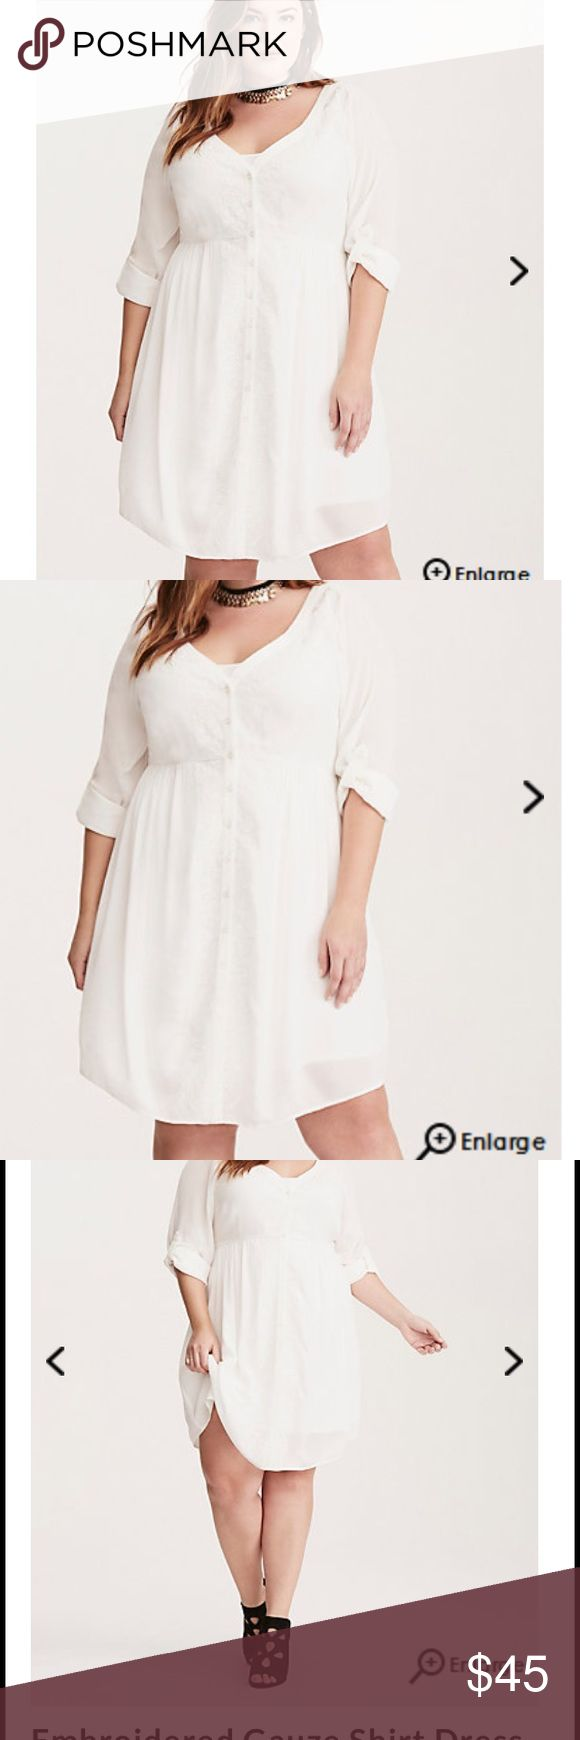 Torrid Boho white embroidered dress size3 3X 22/24 Get ready to fall in love ❤️ with this Torrid shirt dress. White gauze material gives a fresh breezy overlay on a romantic dress. Delicate embroidery cascades down the polished button front Adding to the bohemian feeling. . Tonal slip overlay keeps you covered. Size 3 3X 22/24 Bust 54, waist 48, hips 60-64. torrid Dresses Midi